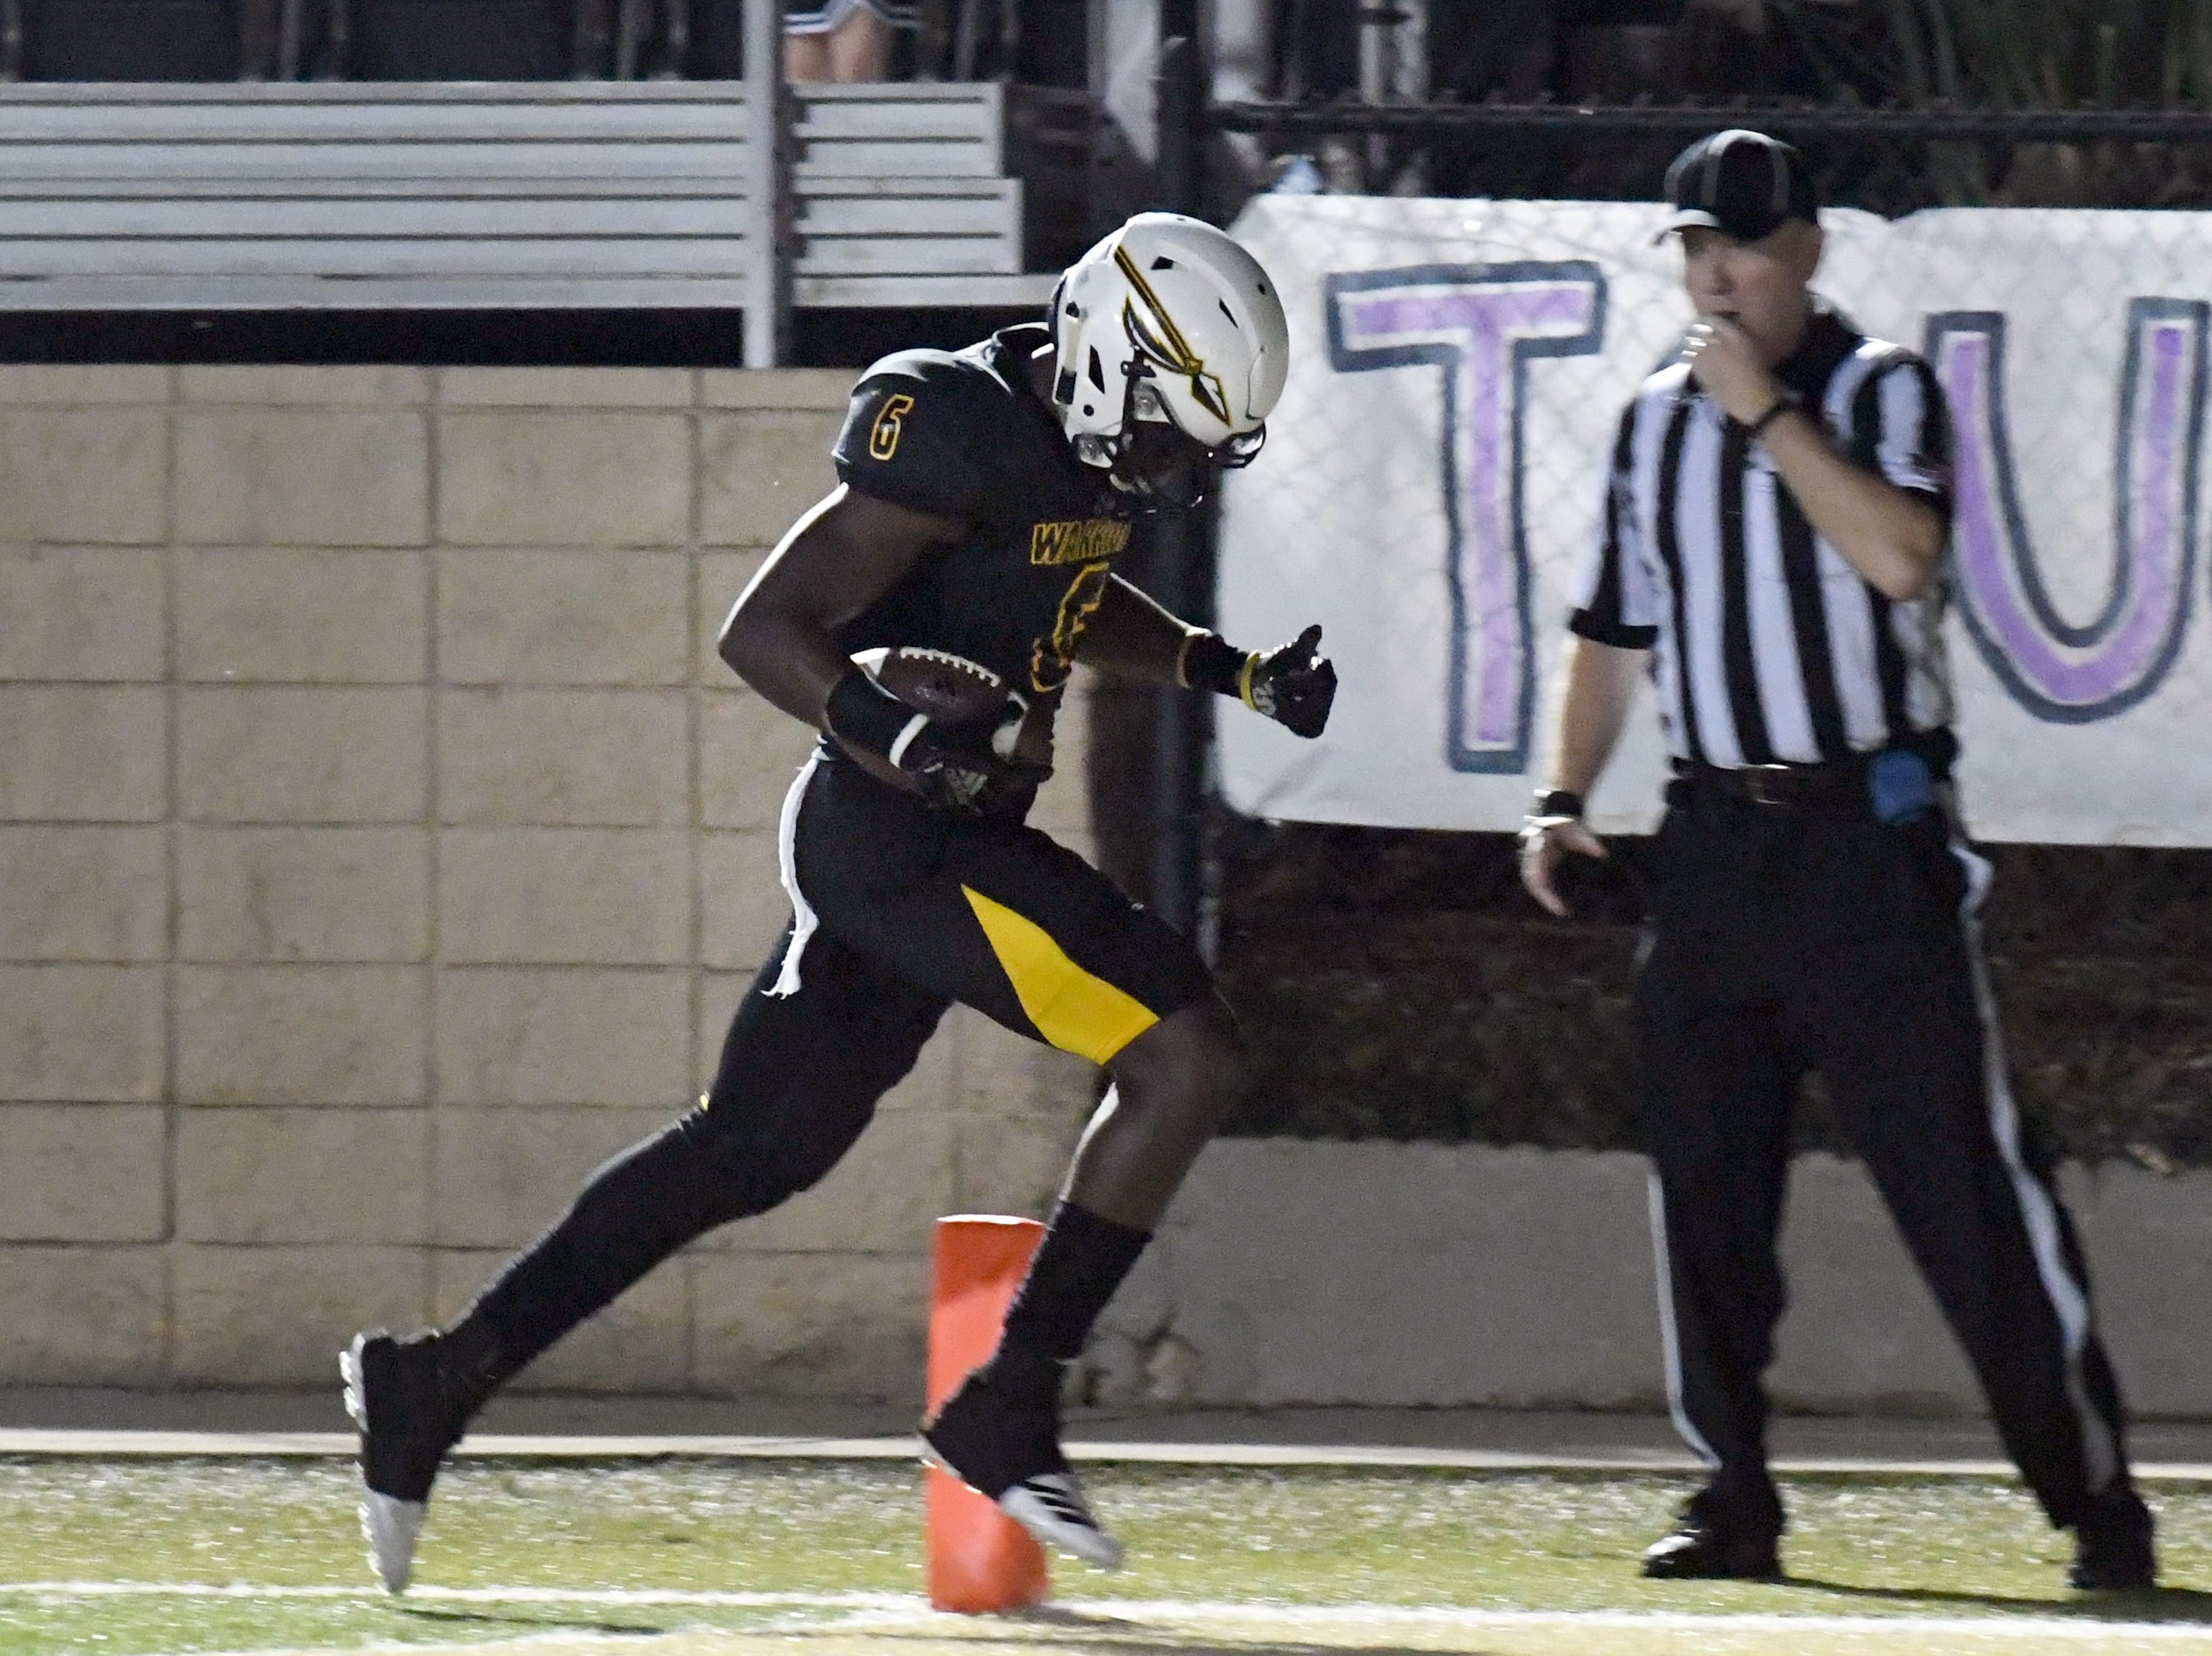 Oak Grove's Jarius Reimonenq scores a touchdown in a game against George County in Hattiesburg on Friday, September 21, 2018.